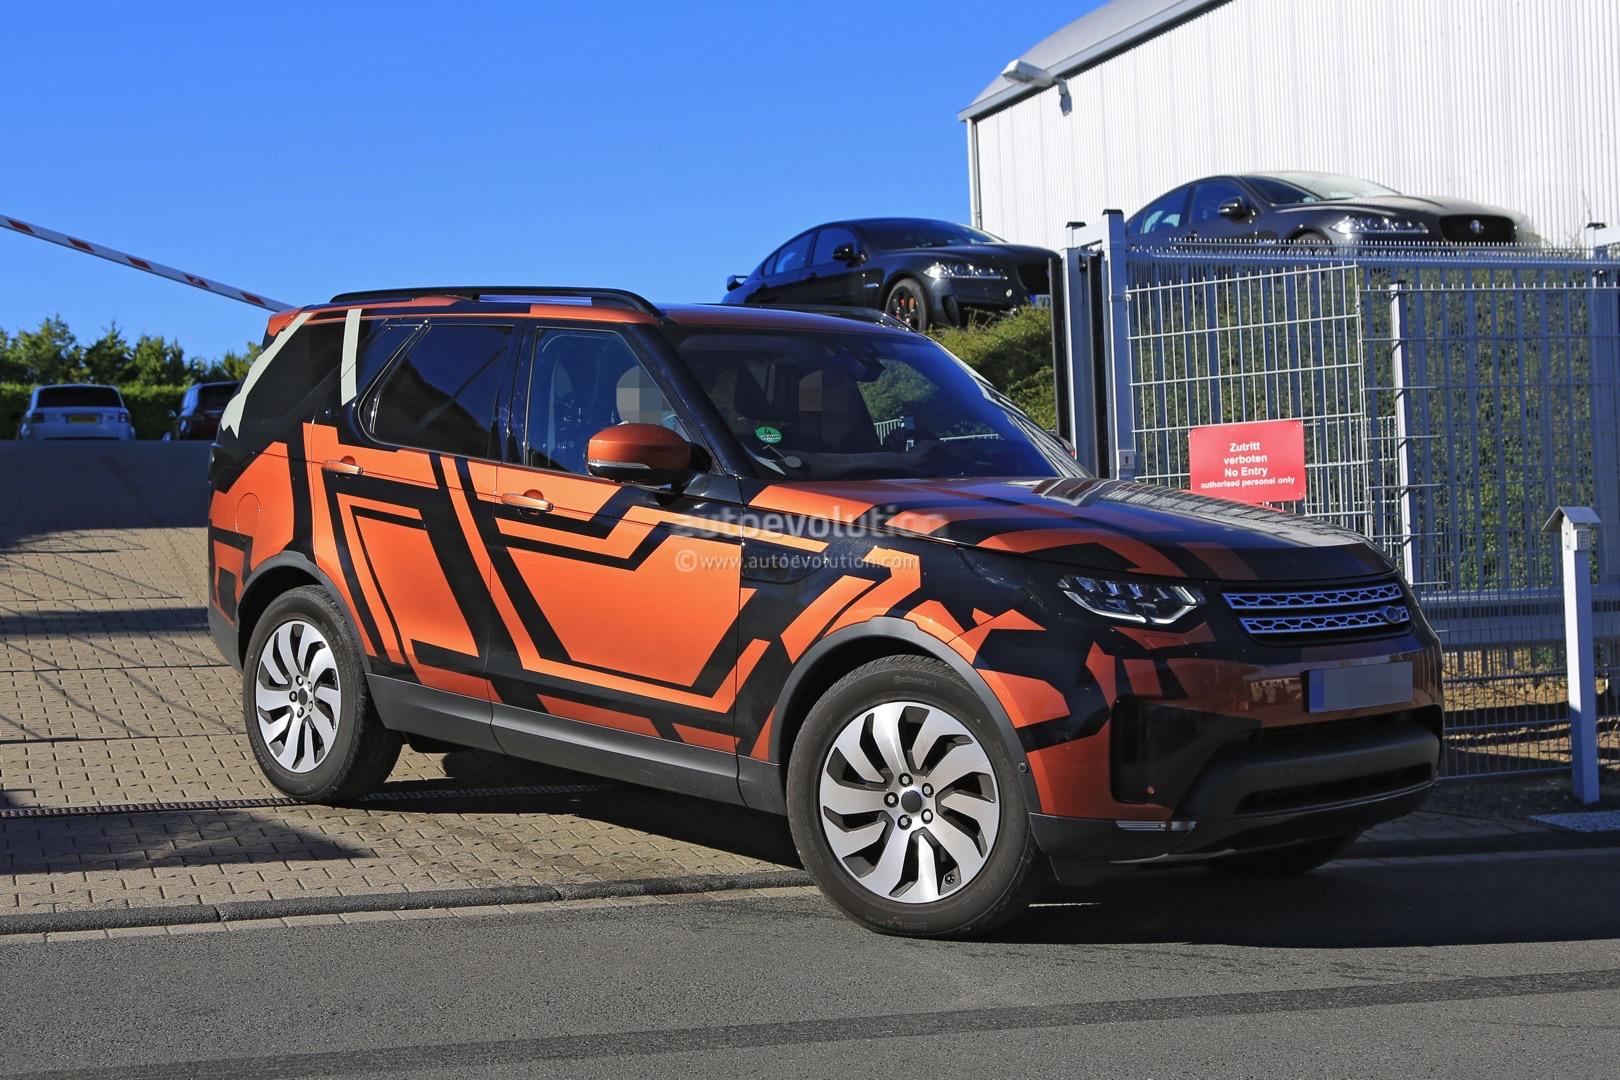 2017 Land Rover Discovery 5 / 2018 Land Rover LR5 Spied ...